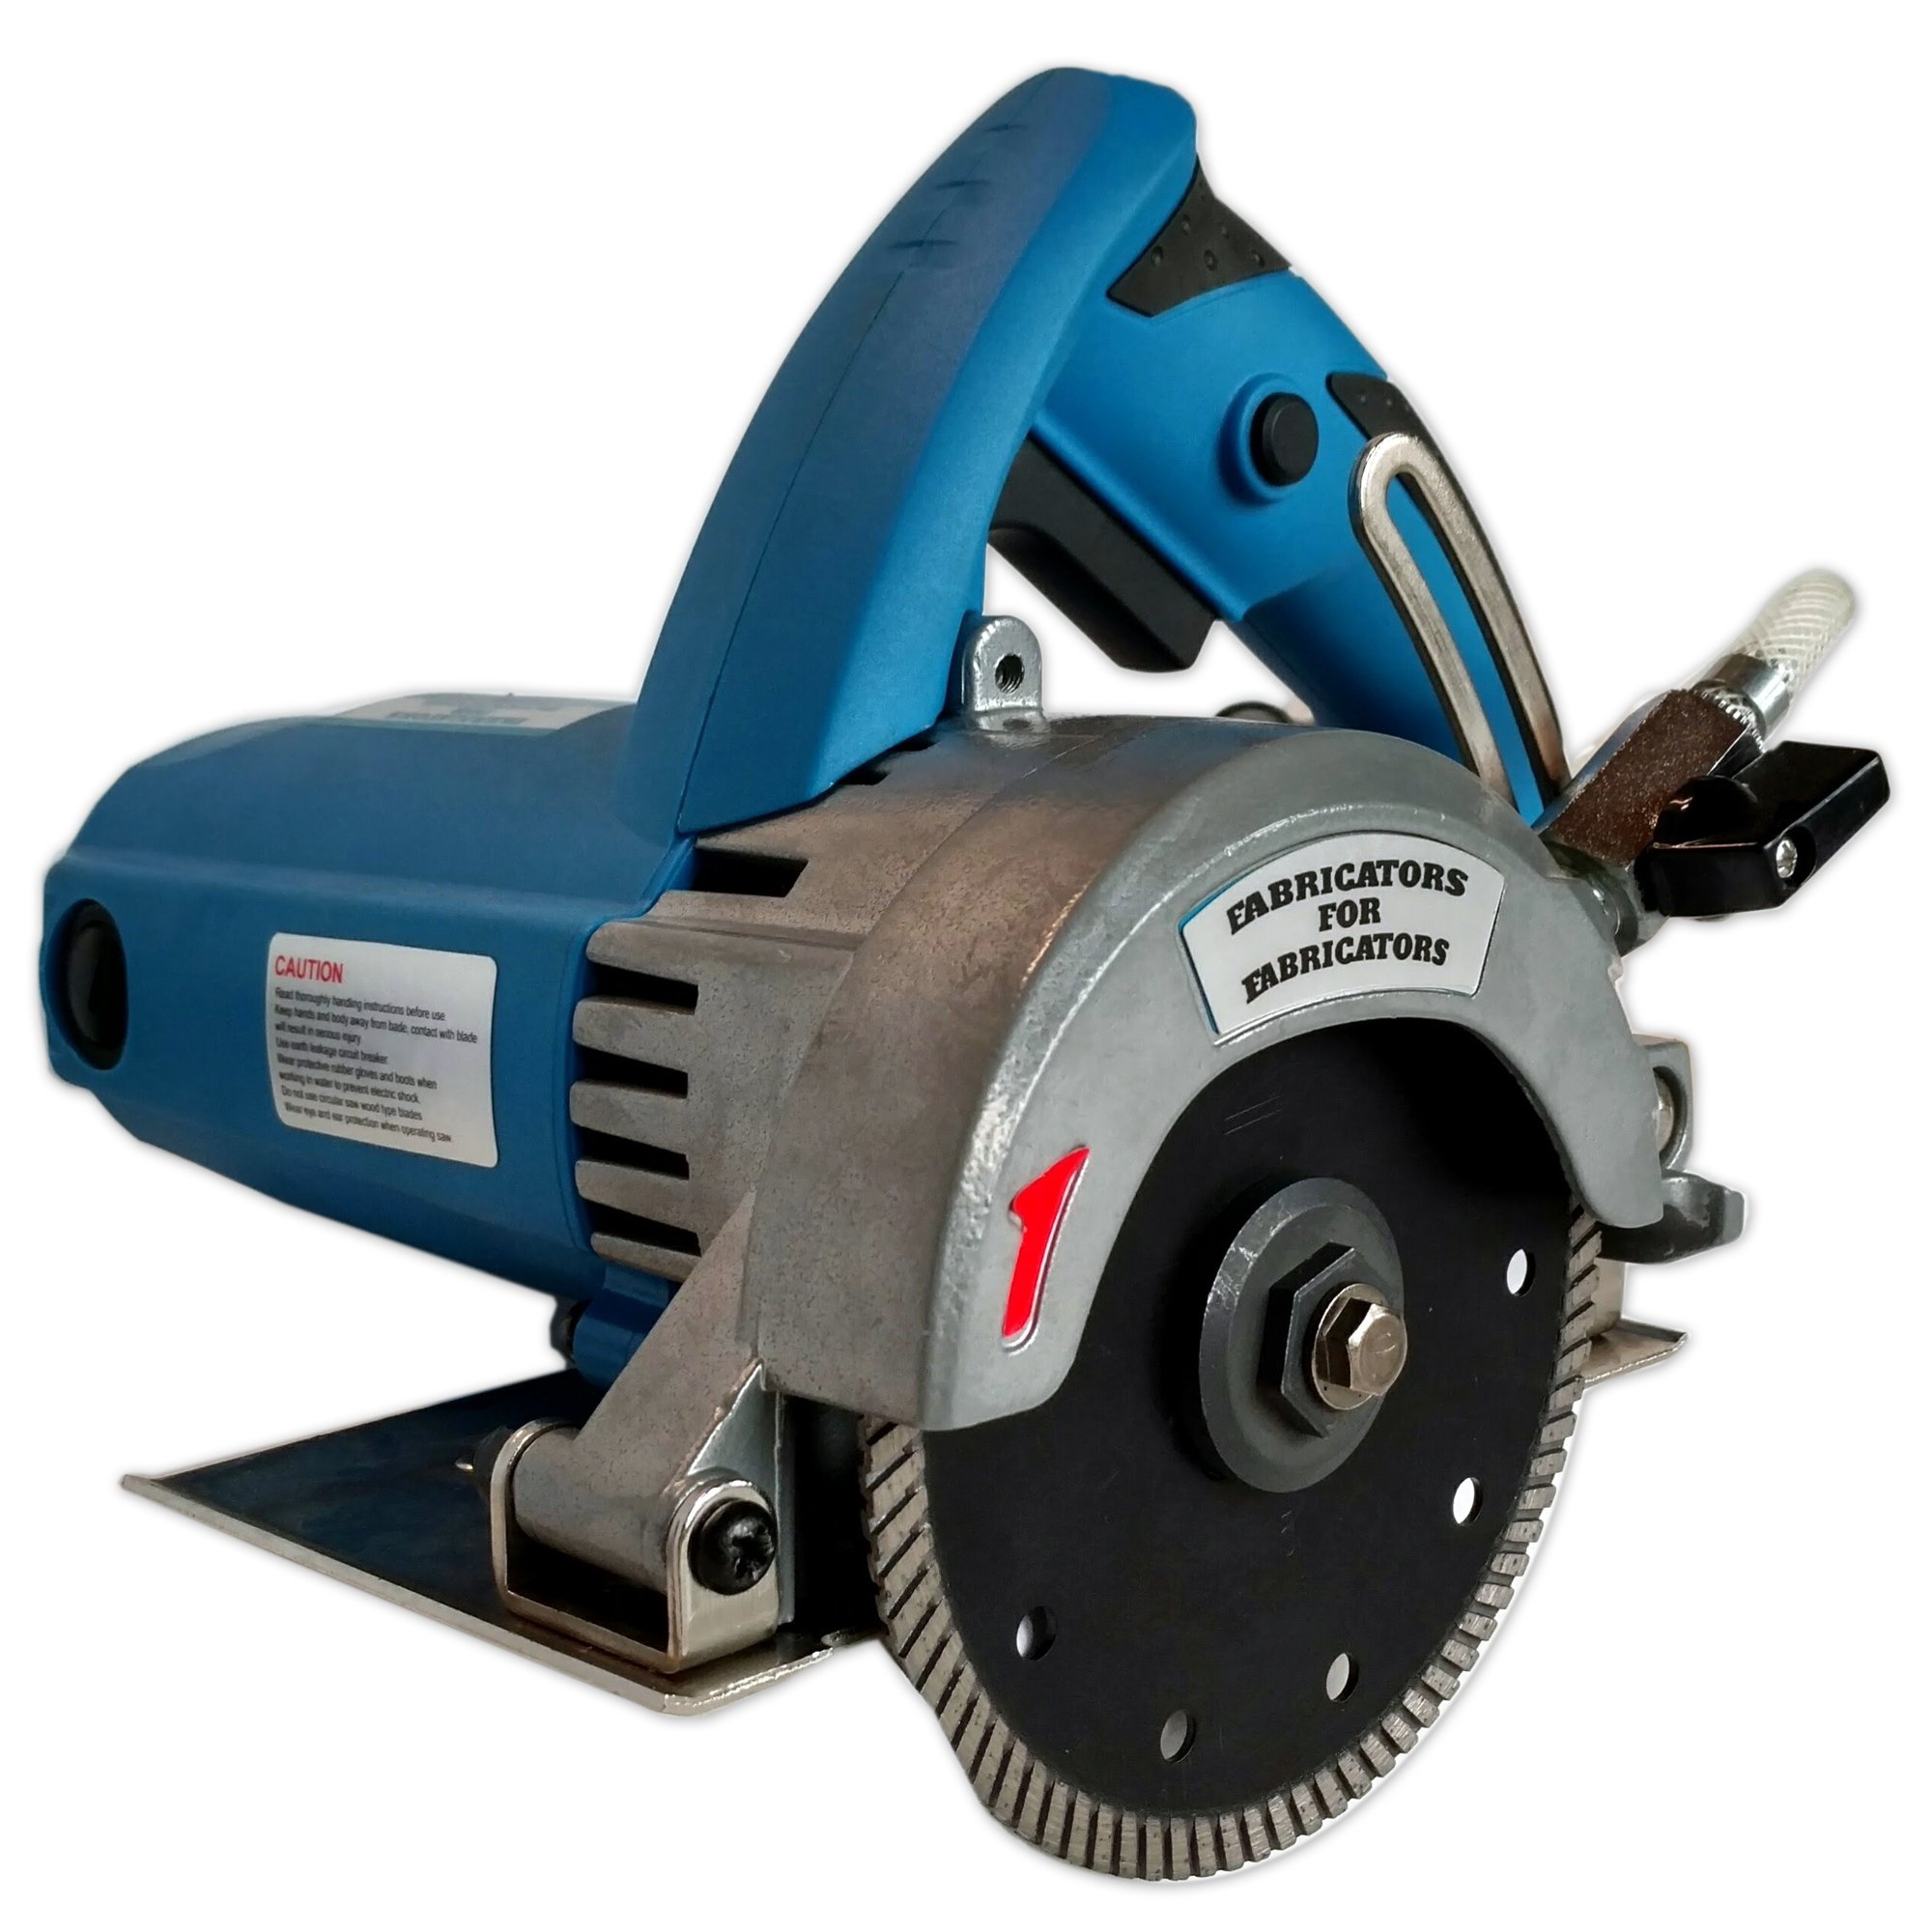 FAB-125 A. Heavy-Duty 2.2HP Stone Cutter 5-inch Contour or Flat Blade Wet/Dry for stone, tile and masonry by Fabricators for Fabricators LLC,